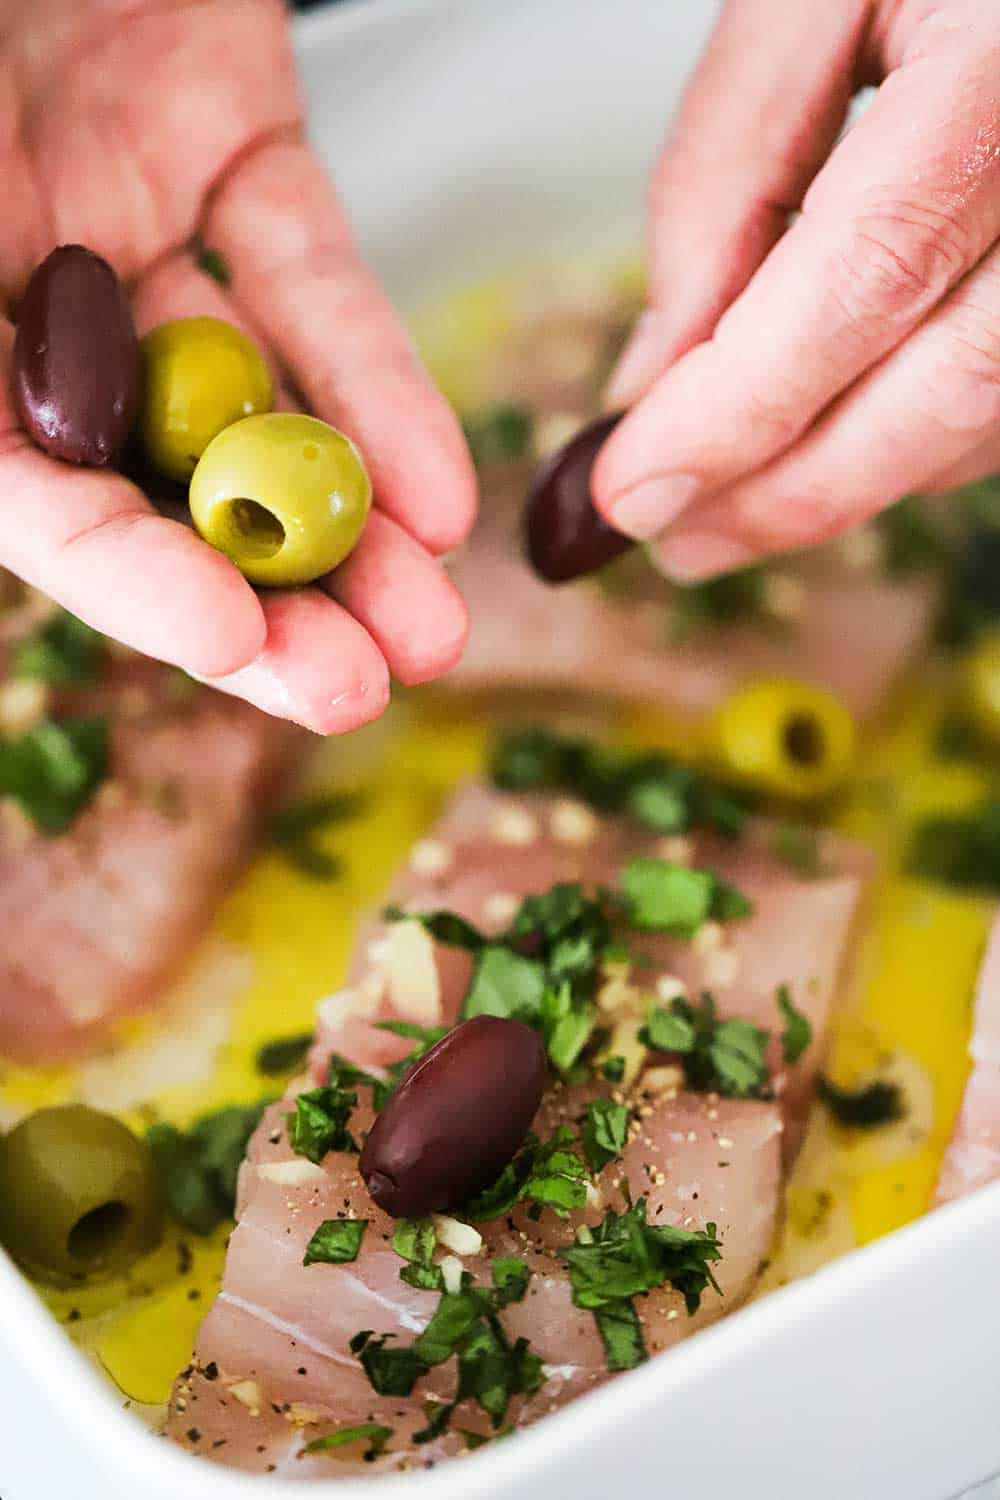 Two hands placing pitted green and Kalamata olives into a baking dish filled with fish fillets covered in olive oil, basil, and garlic.